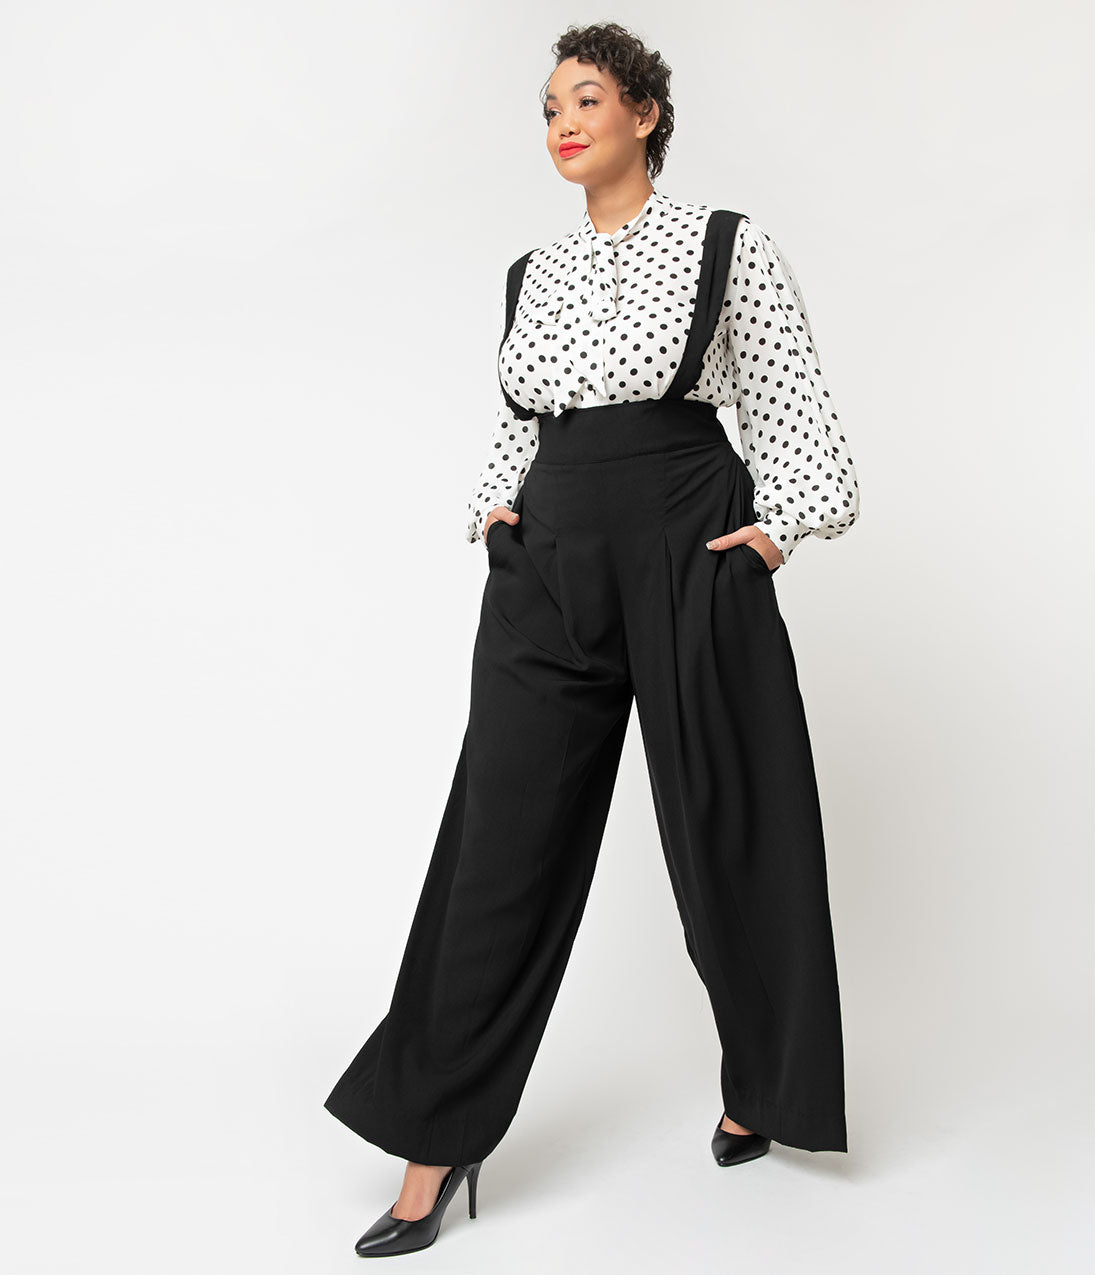 1940s Swing Pants & Sailor Trousers- Wide Leg, High Waist Unique Vintage Plus Size Black High Waist Wide Leg Rochelle Suspender Pants $64.00 AT vintagedancer.com